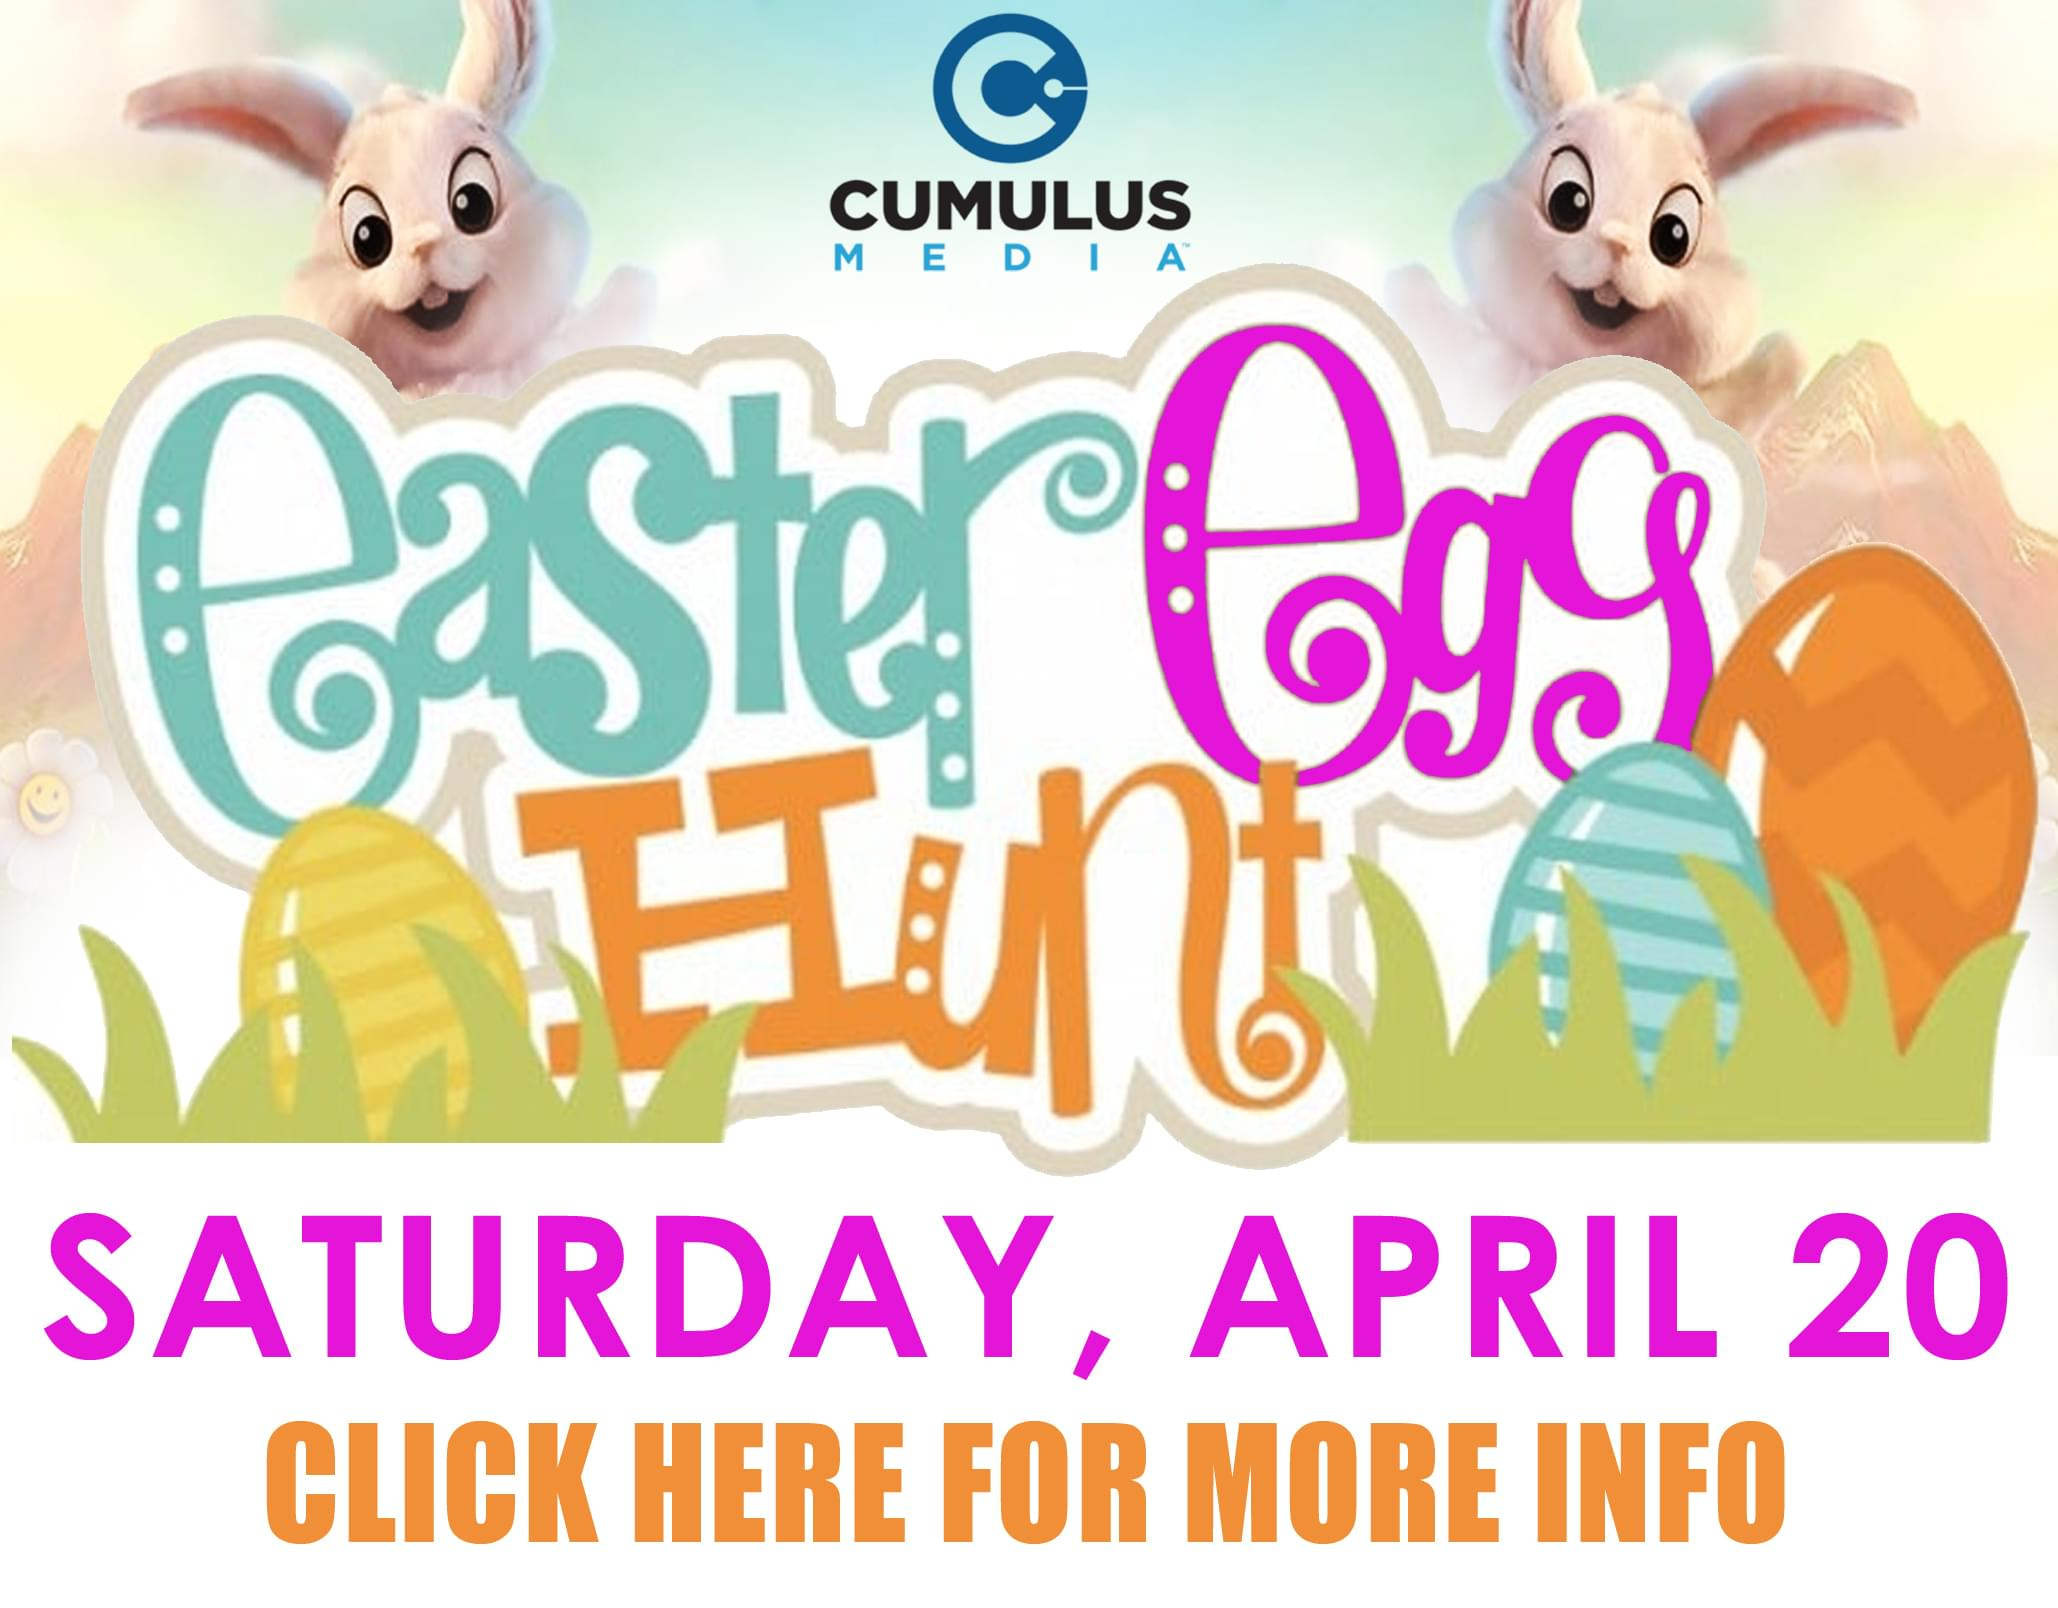 Cumulus Baton Rouge Easter Egg Hunt